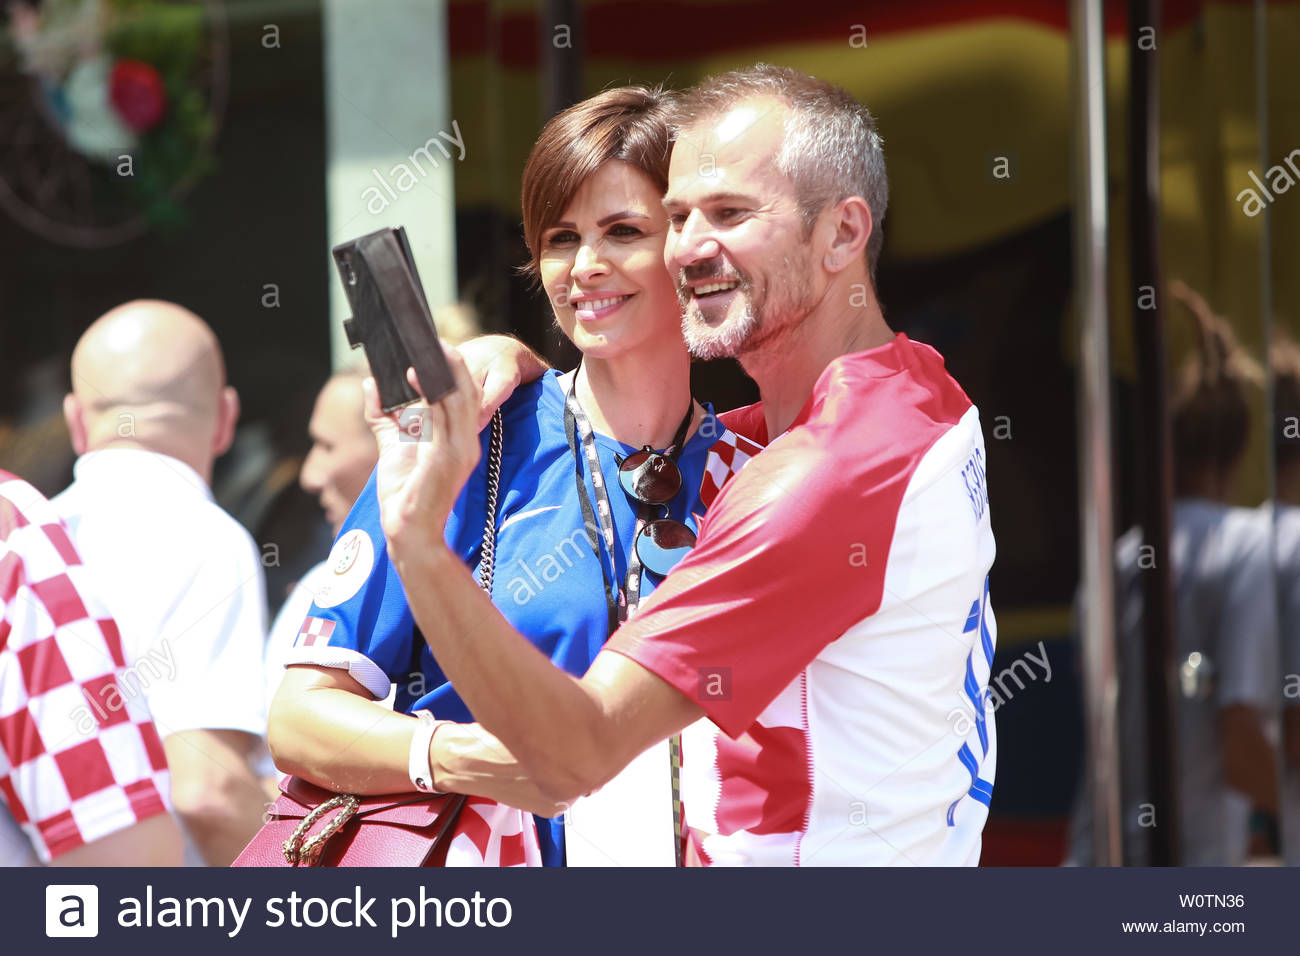 ZAGREB,CROATIA -JULY 16, 2018 : National Team welcome home celebration. Anica Kovac former model known for being the First Runner-up in the Miss World 1995 competition with Croatian fan taking selfie. - Stock Image